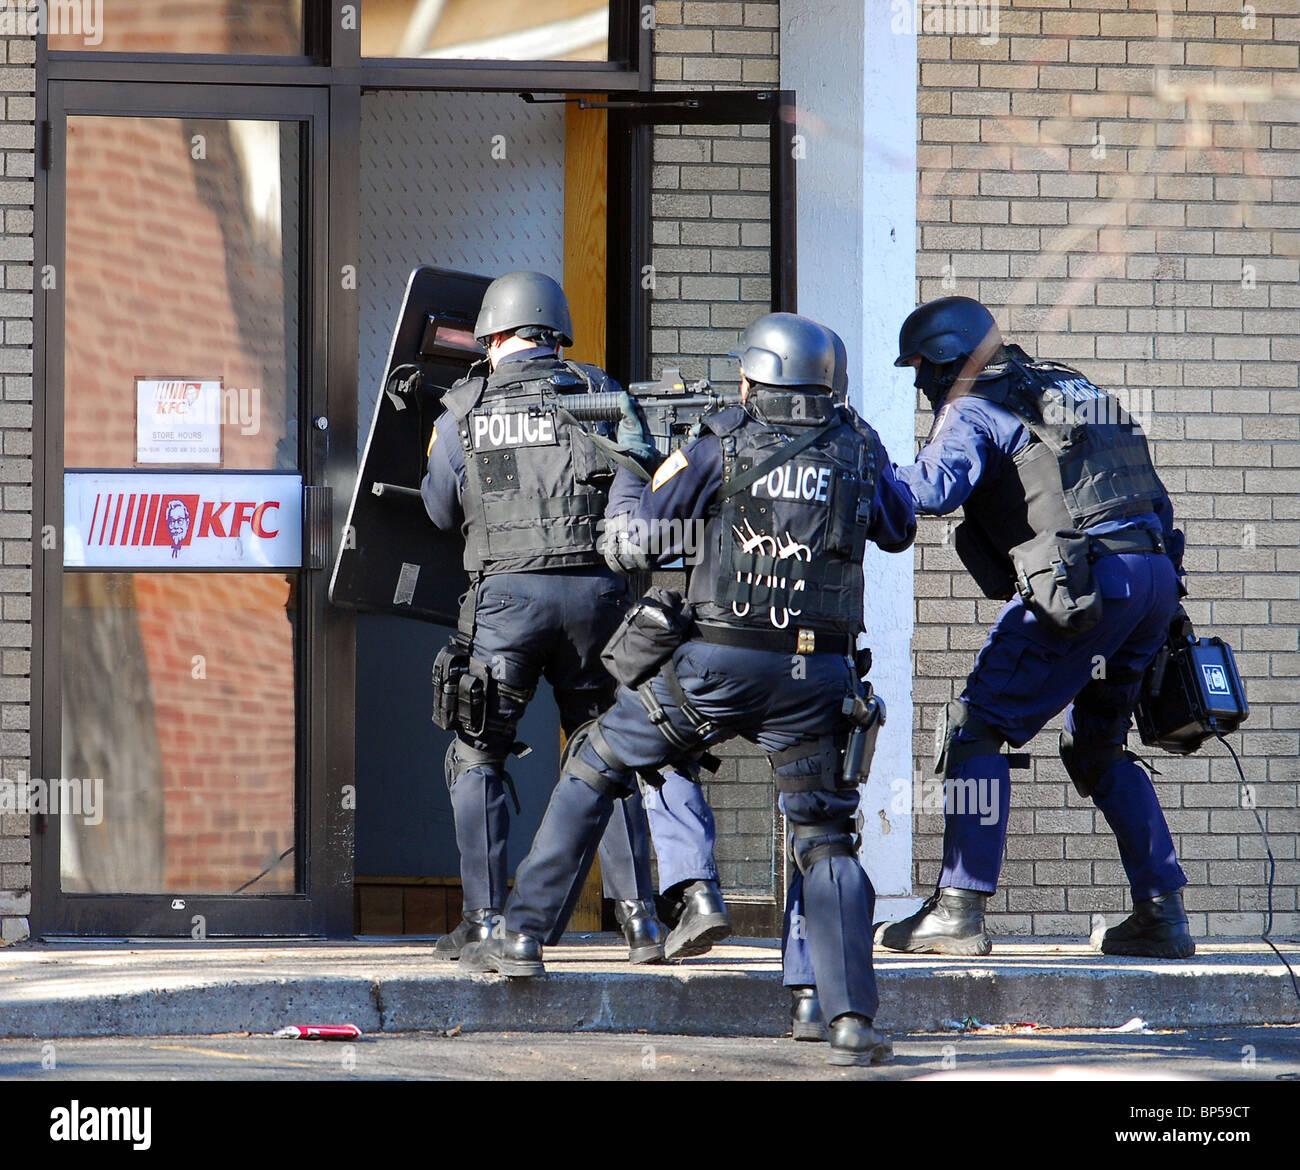 Image Result For Swat Stock Video